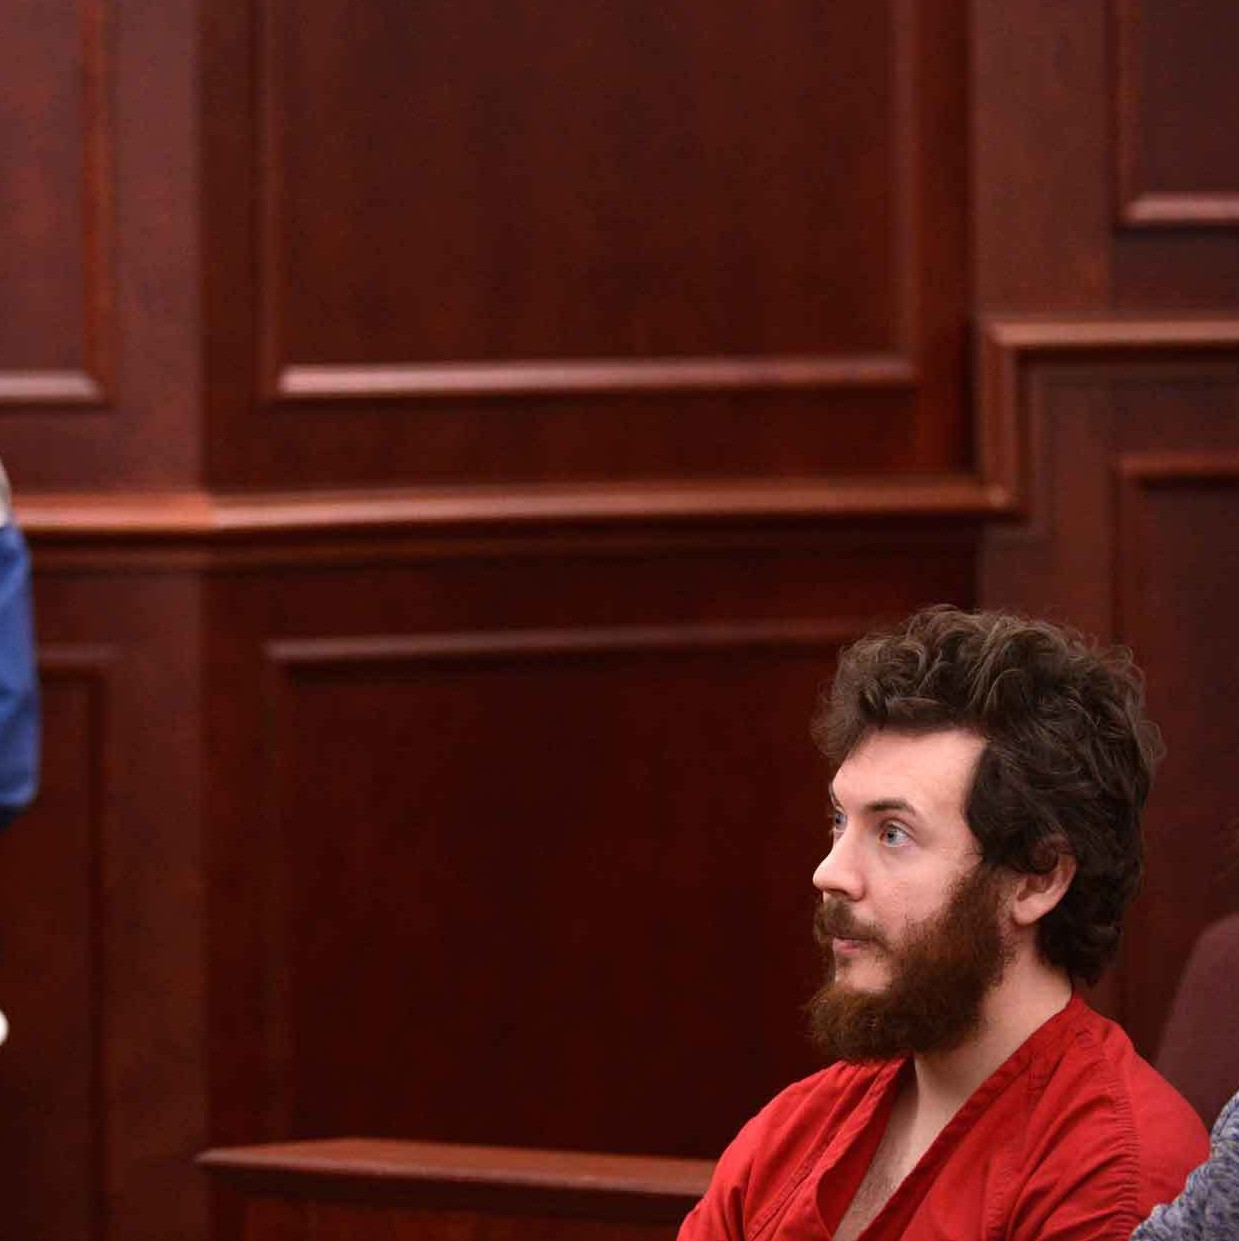 James Holmes Colorado Shooting Gunman Used Same Drugs: James Holmes Found Guilty In Aurora Theater Shooting Trial